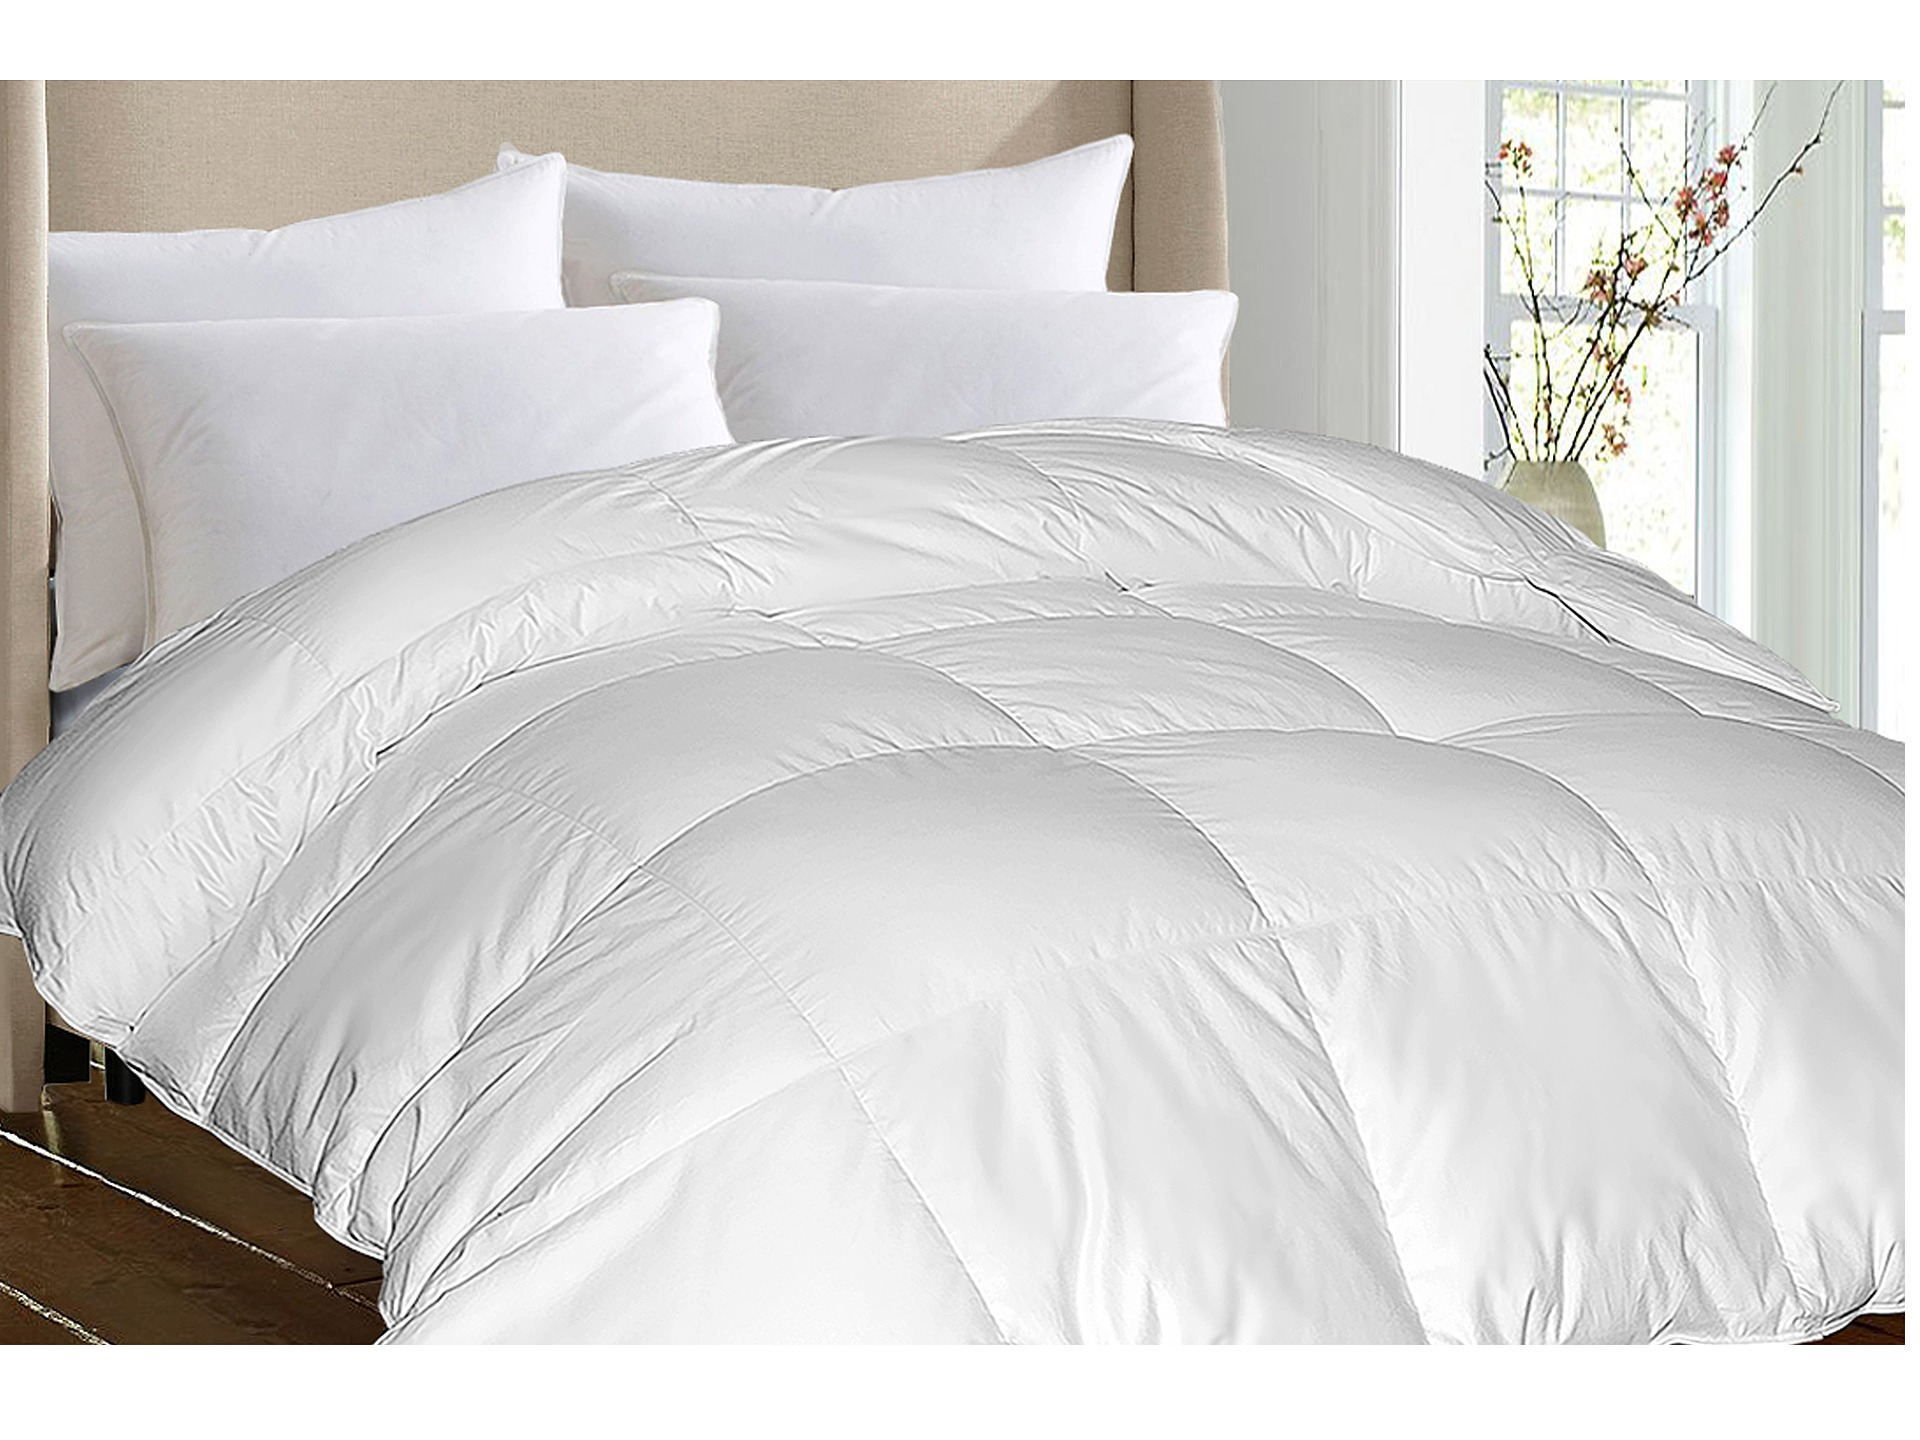 royal luxe damask stripe white goose down white goose feather comforter king shipped free at. Black Bedroom Furniture Sets. Home Design Ideas